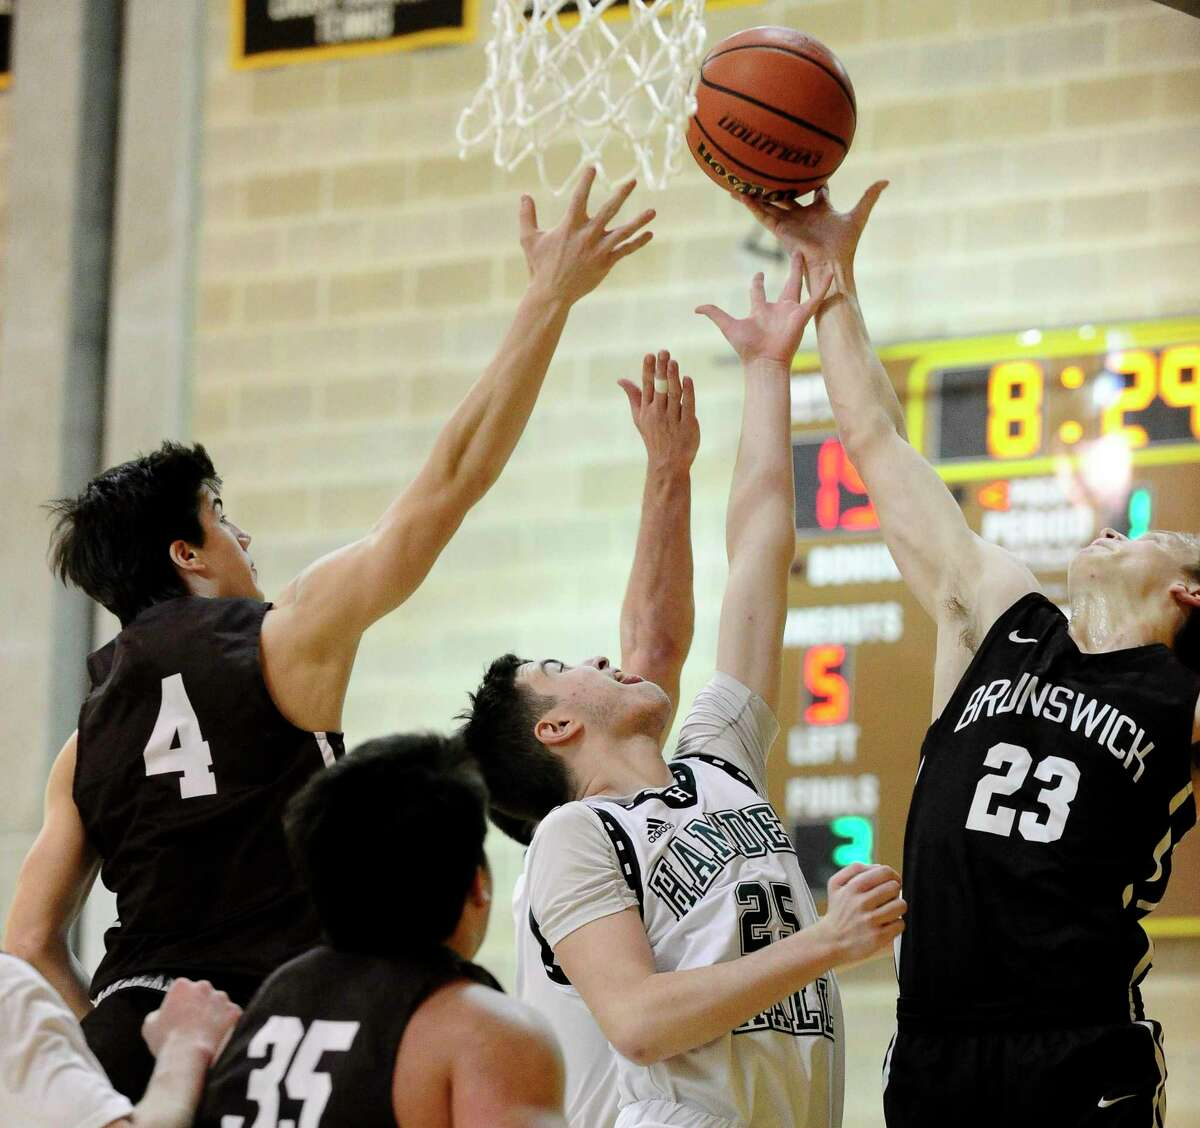 Brunswick's Logan Galletta (4) and Colin Mulshine (23) fights for the rebound against Hamden Hall Tyler Callahan (25) in the first half of an FAA boys basketball game at Brunswick School on Feb. 14, 2020 in Greenwich Connecticut. Hamden Hall defeated Brunswick 59-58.